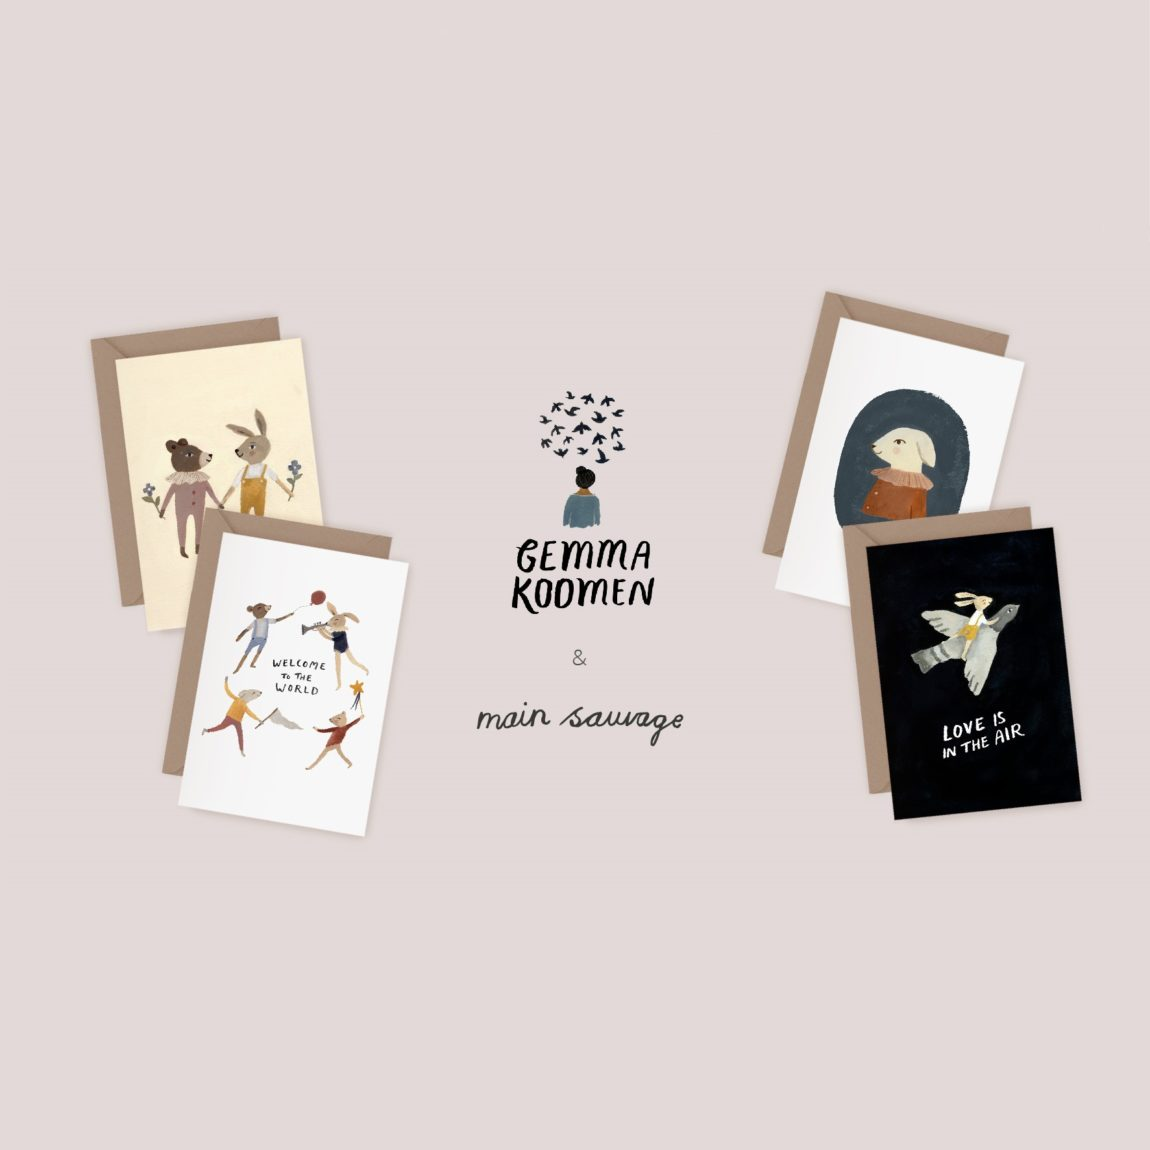 Collaboration Gemma Koomen x Main Sauvage – Illustrated greeting cards